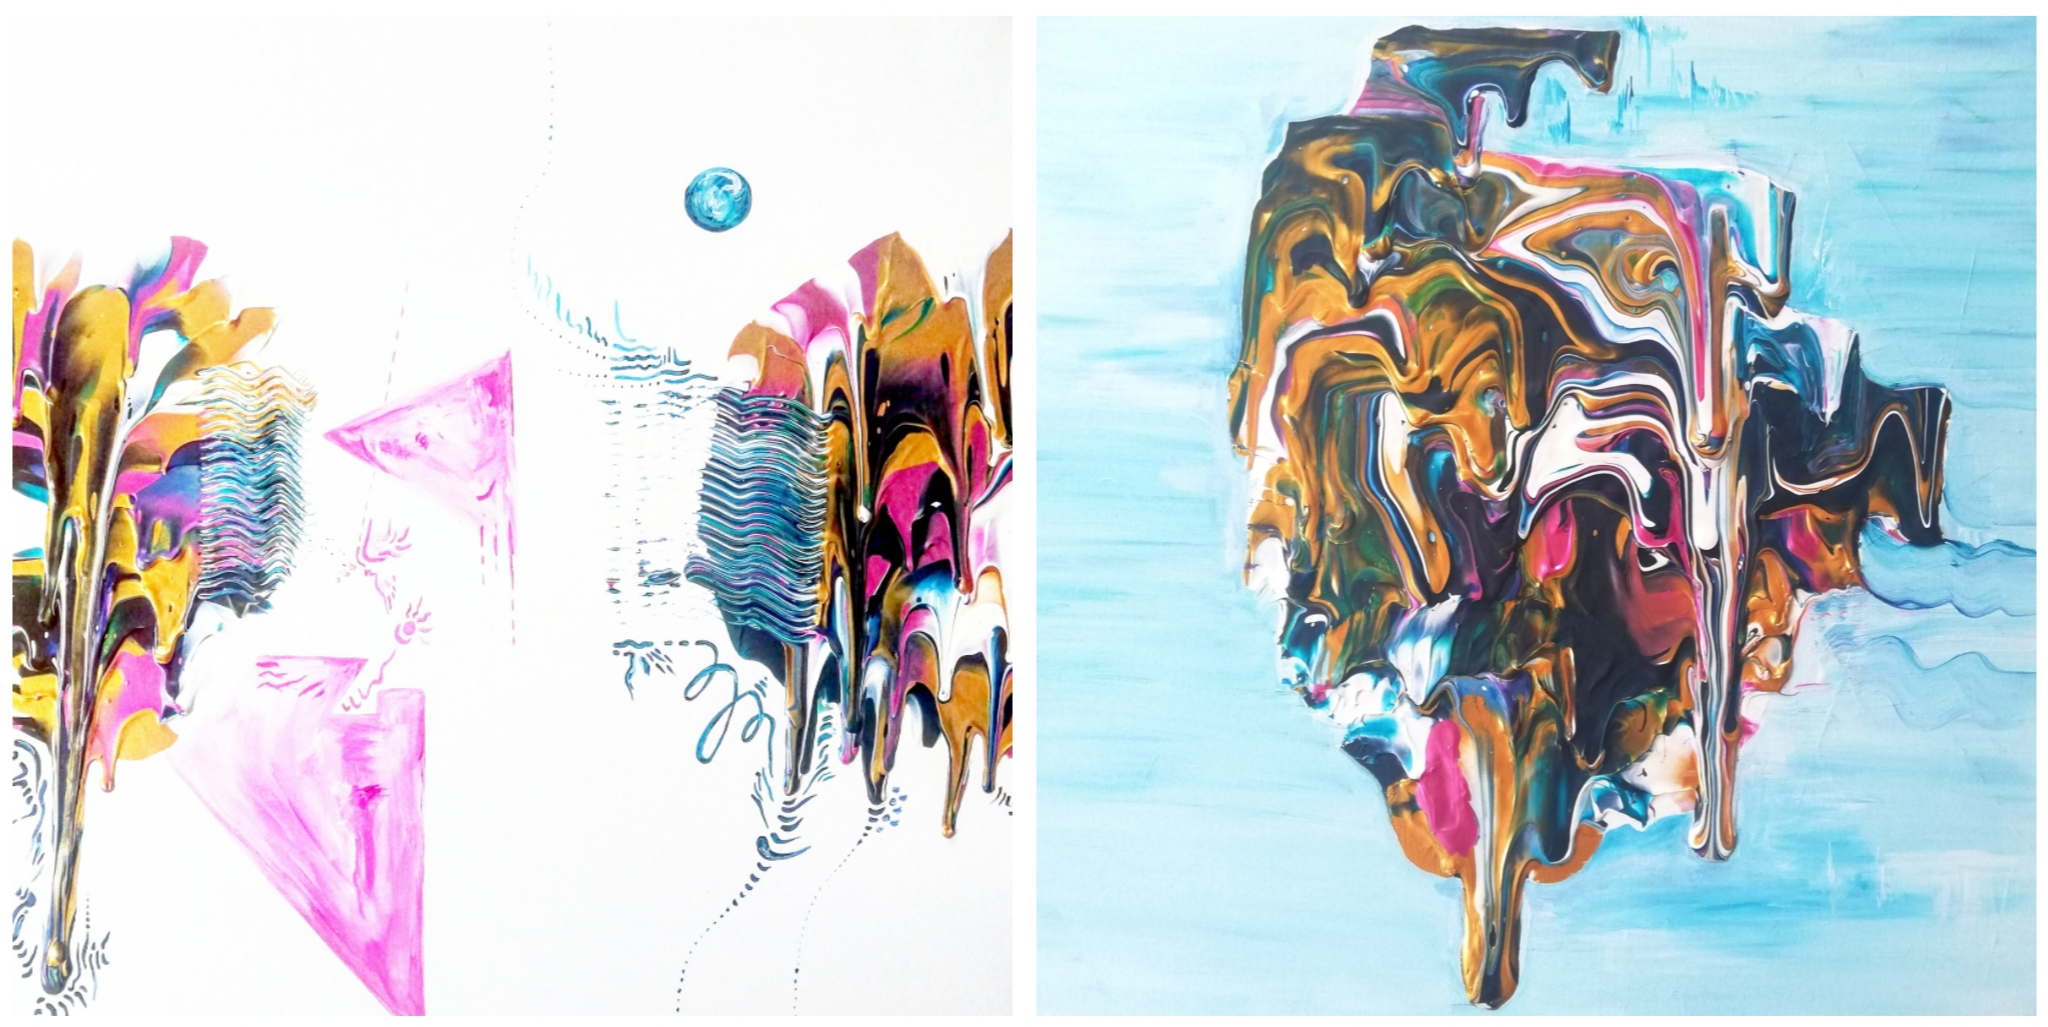 'It's a phase', acrylic on canvases,  50